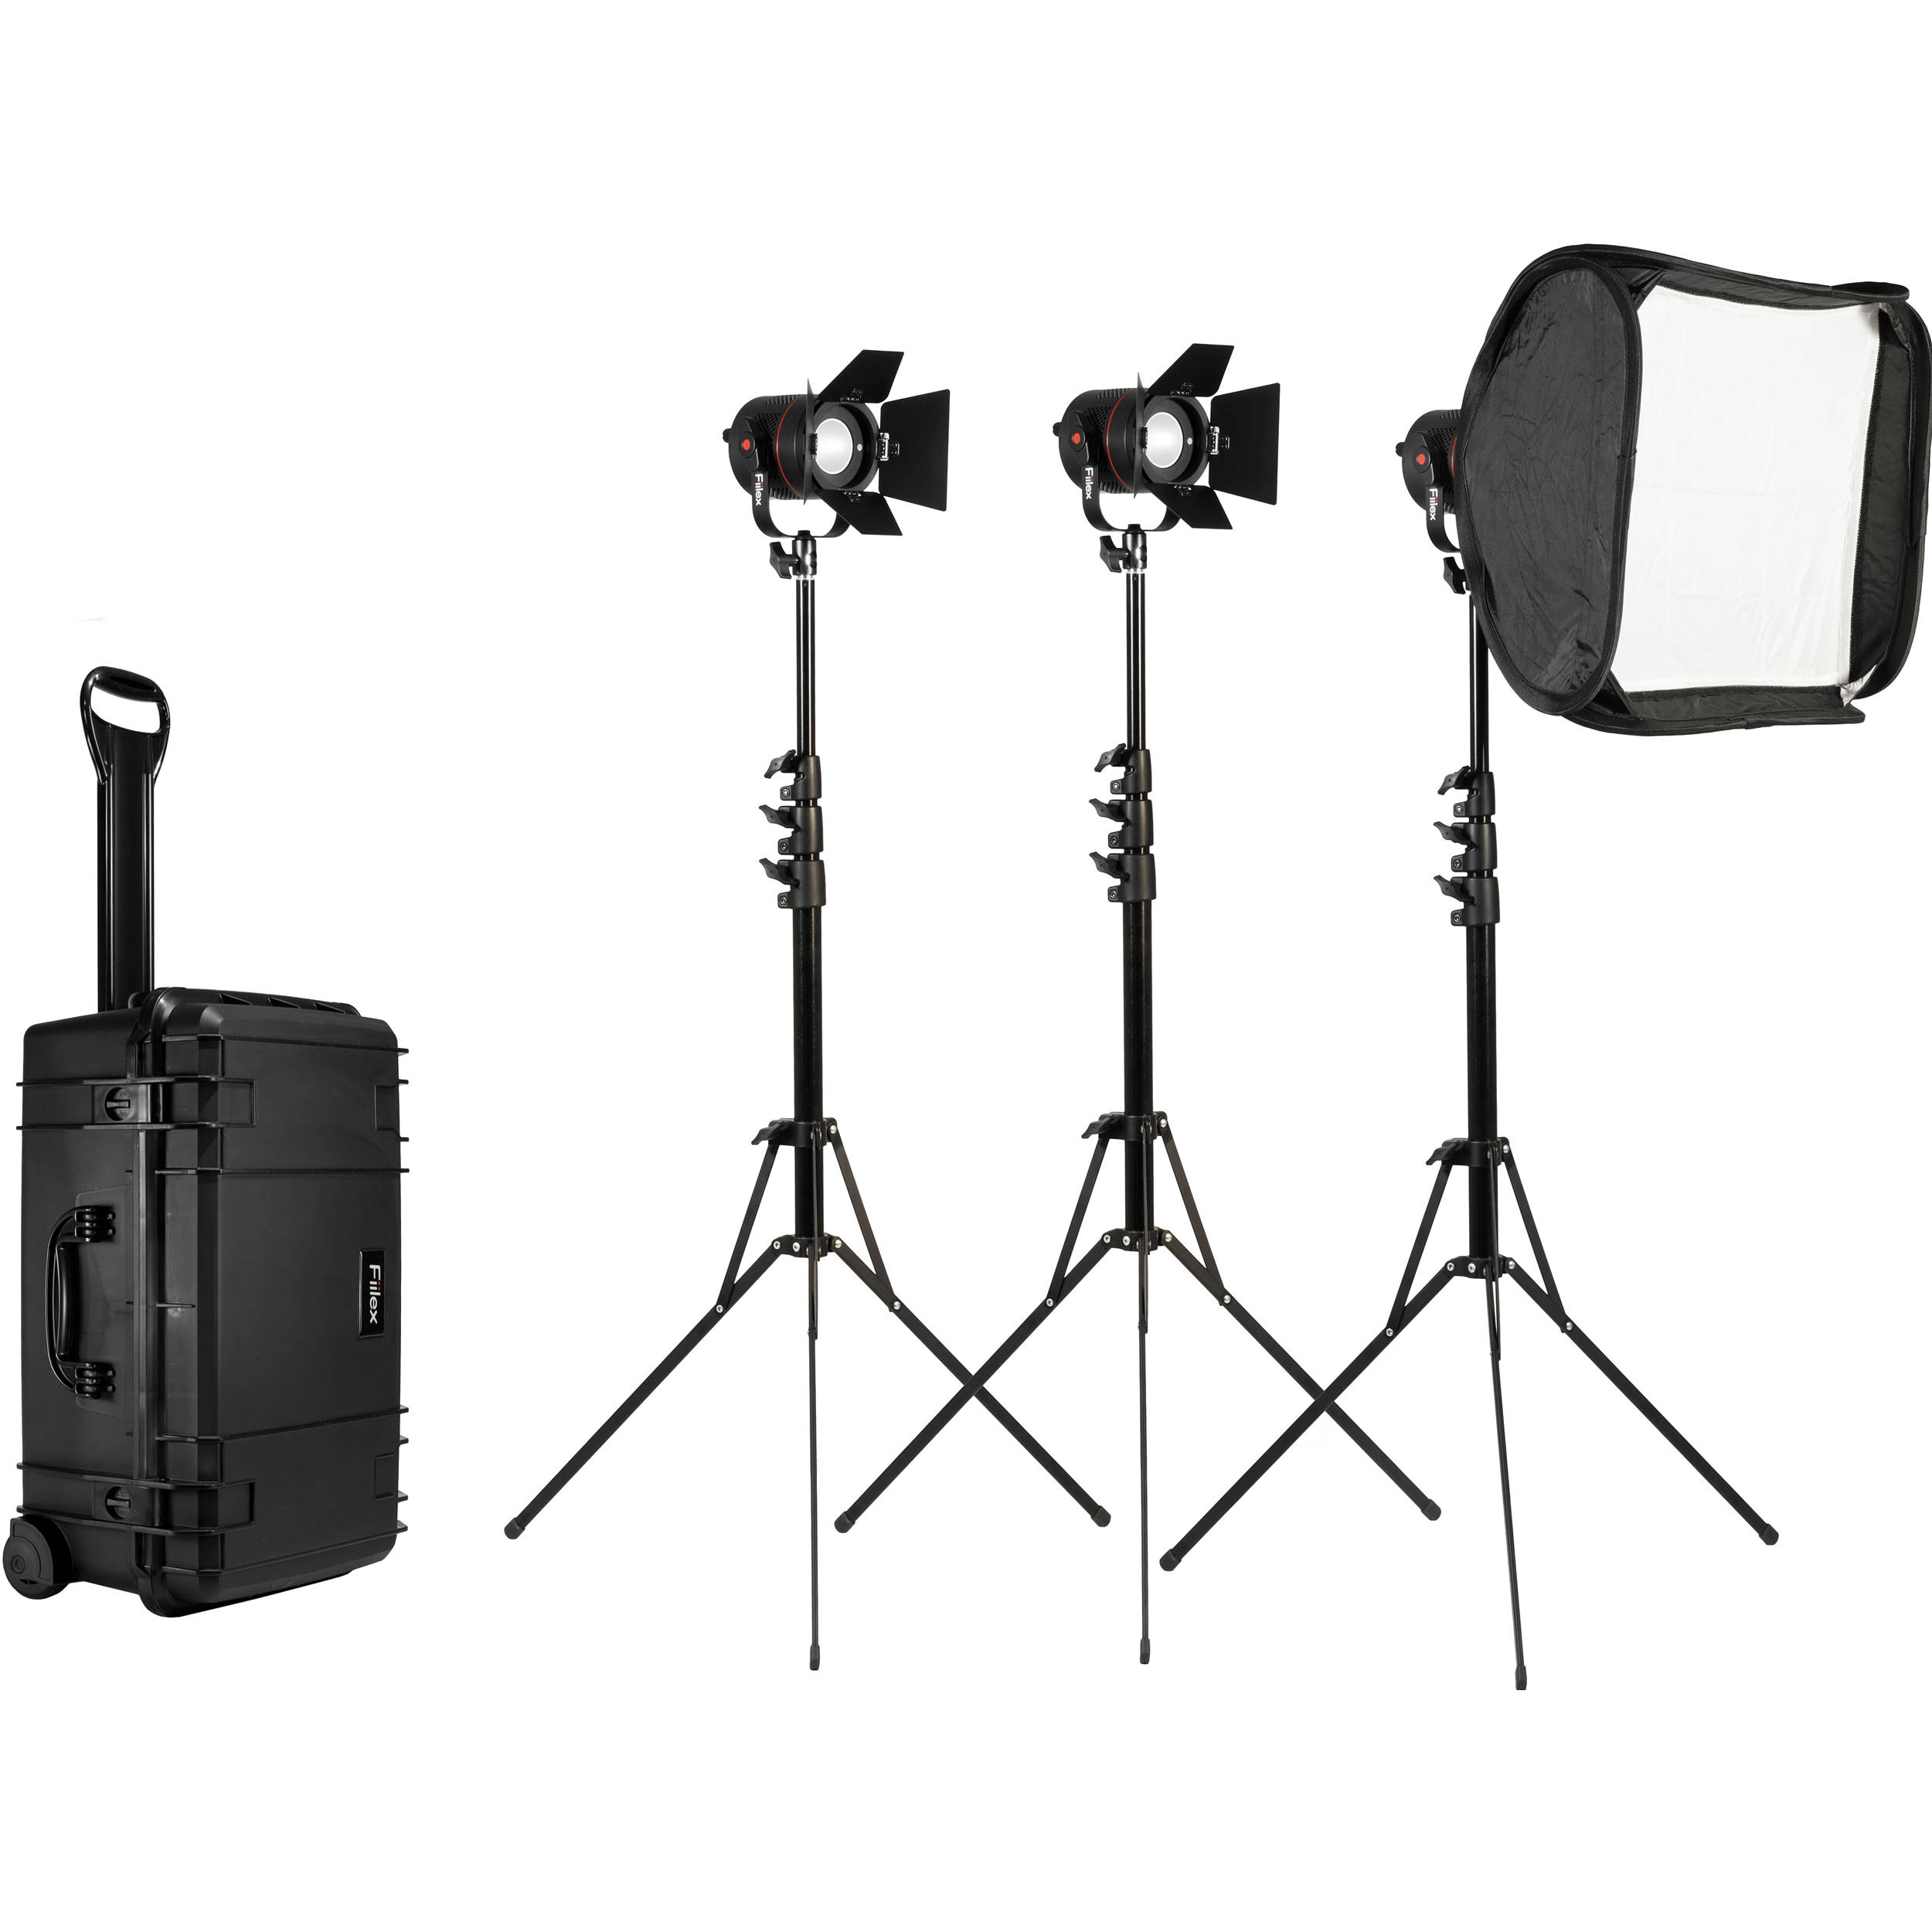 products and by continuous softbox socket photo light video loadstone studio lighting kit bulb for with stand umbrella